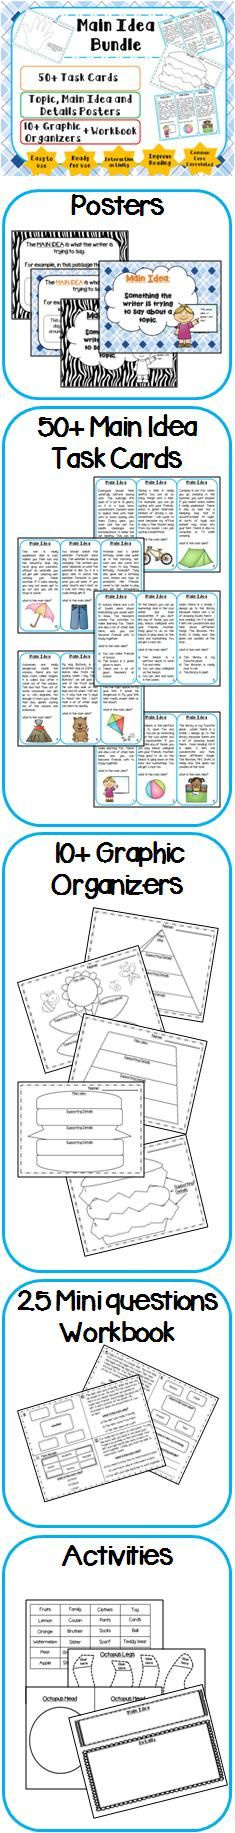 Main Idea Bundle with task cards, activities, graphic organizers and workbook. Visit my blog and facebook page for freebies, tips and new product updates: rollerenglish.blogspot.com https://www.facebook.com/rollerenglish